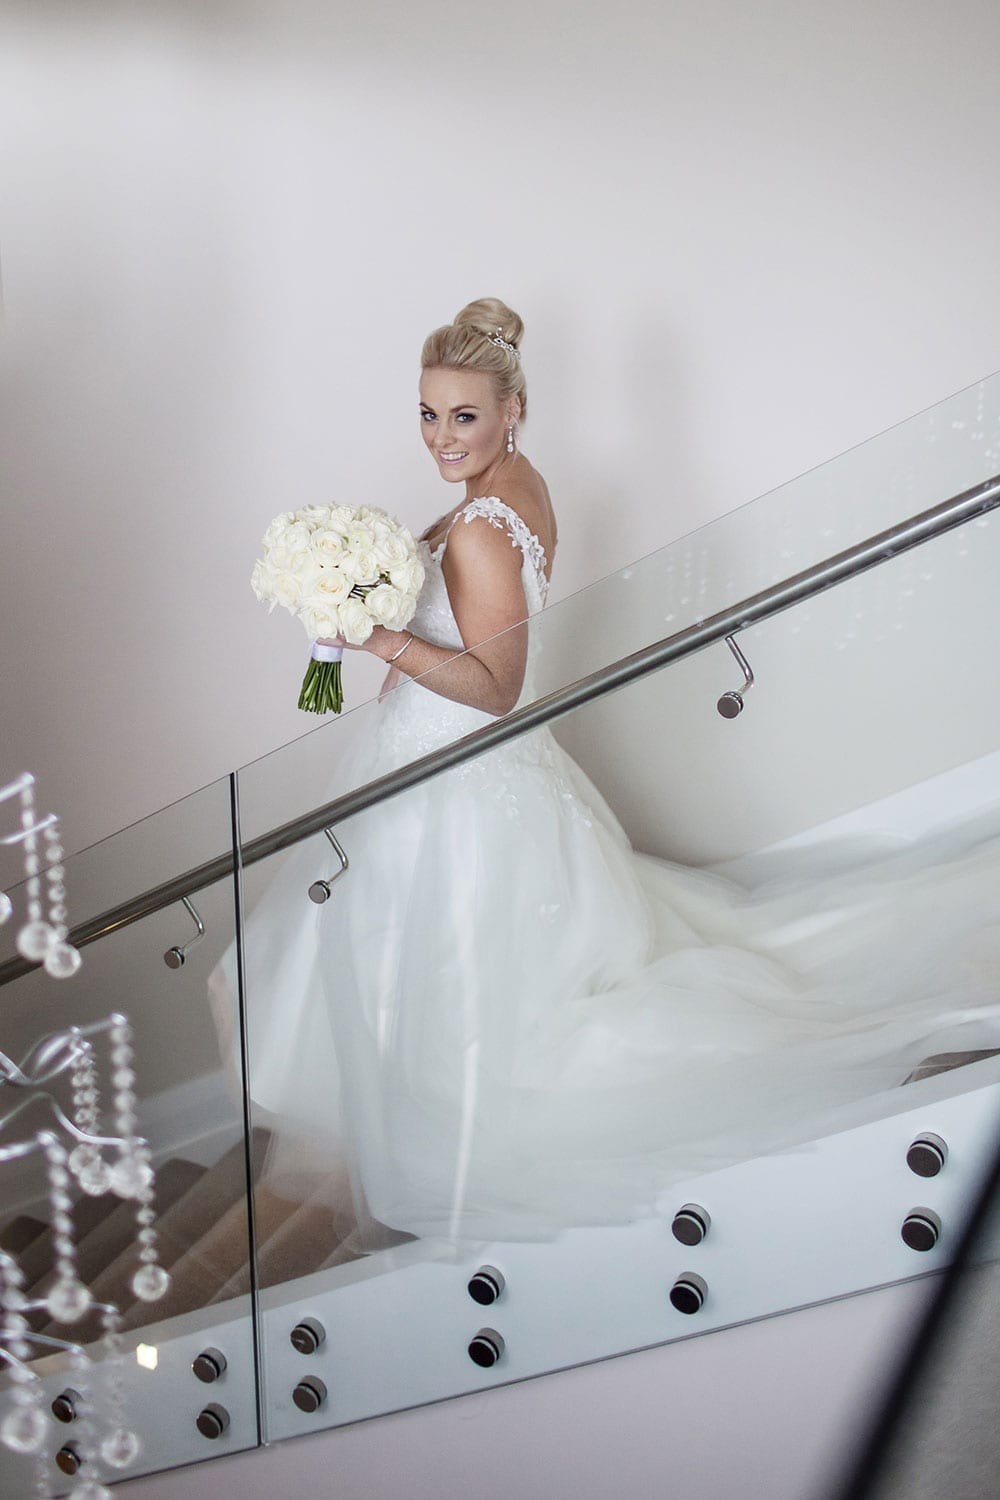 Real Weddings | Vinka Design | Real Brides Wearing Vinka Gowns | Kristen and Ben - Kristen walking down stairs